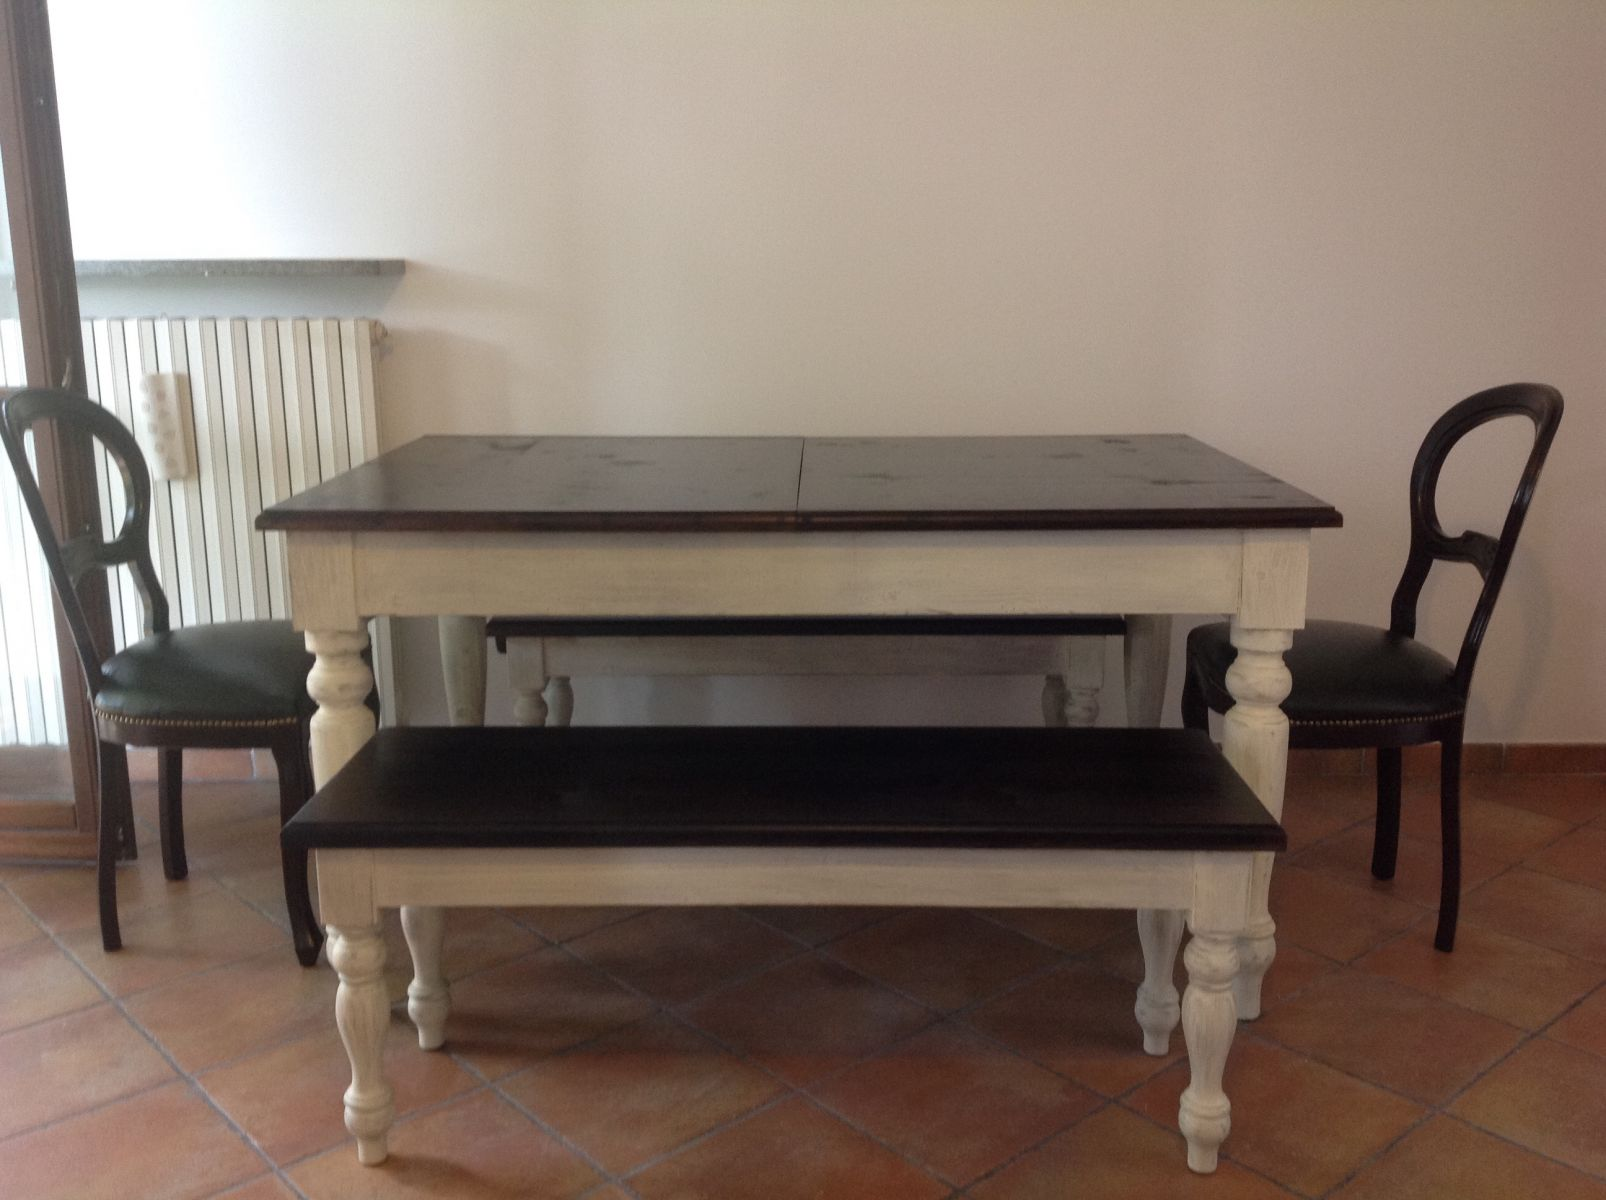 Example of furniture for a home img_7512.jpg